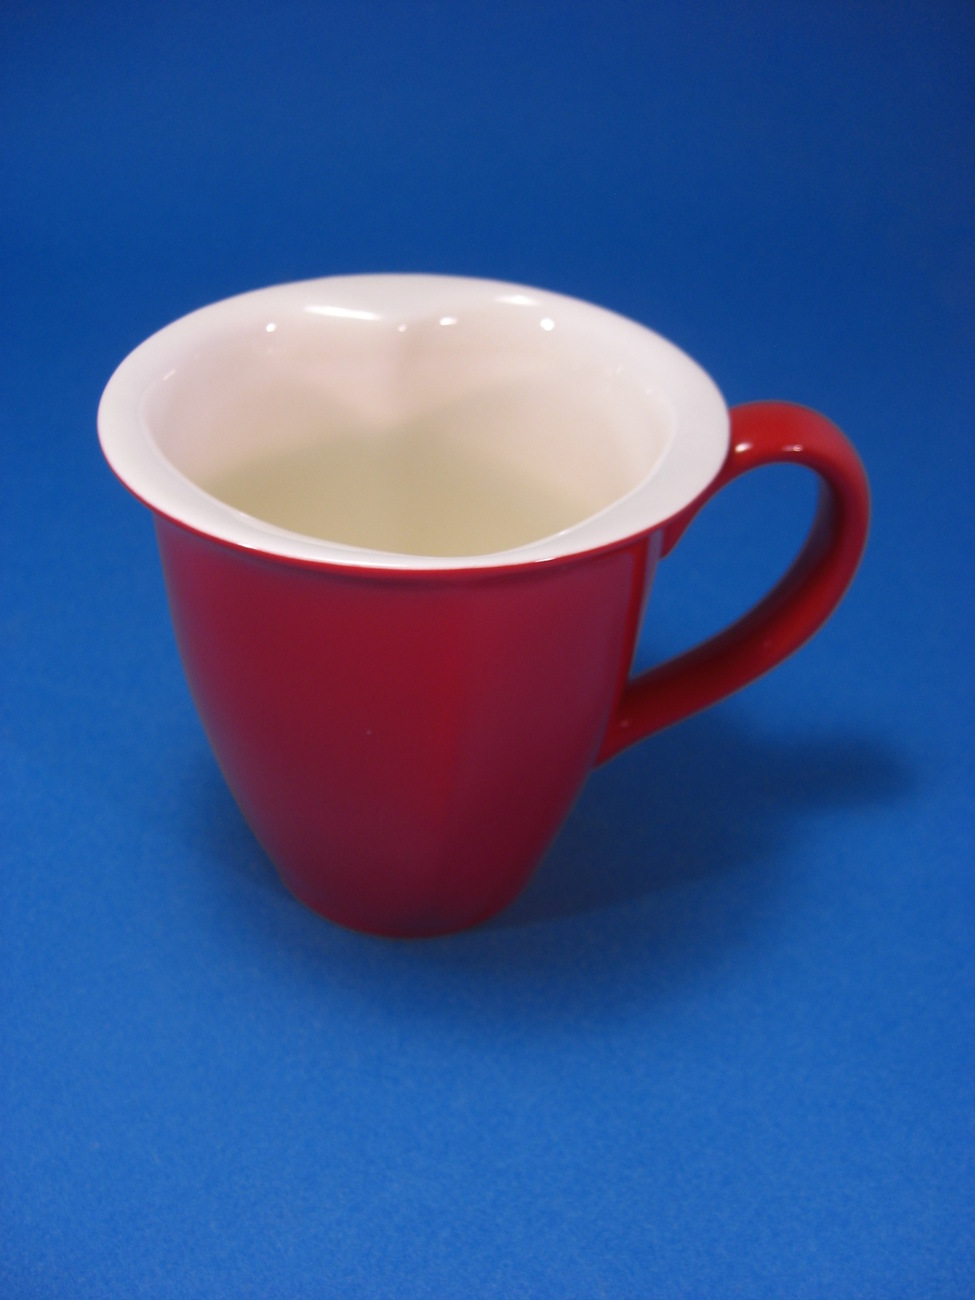 hallmark red white heart shaped coffee mug modern 1970 now